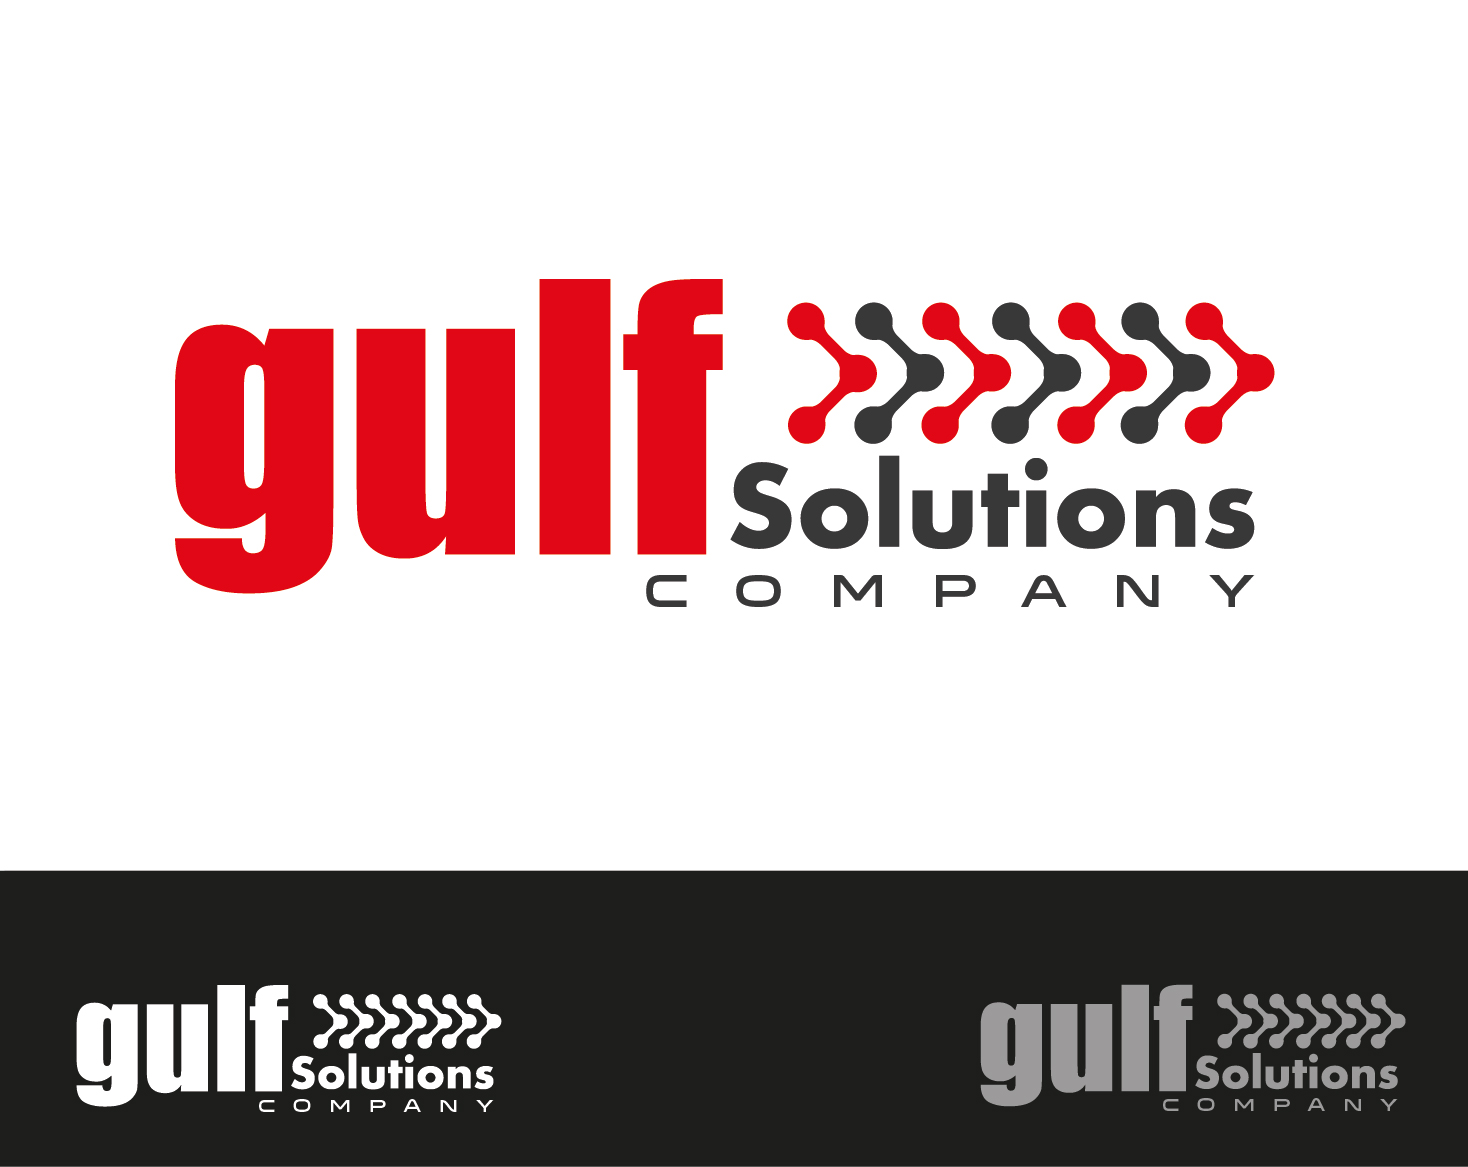 Logo Design by VENTSISLAV KOVACHEV - Entry No. 50 in the Logo Design Contest New Logo Design for Gulf solutions company.